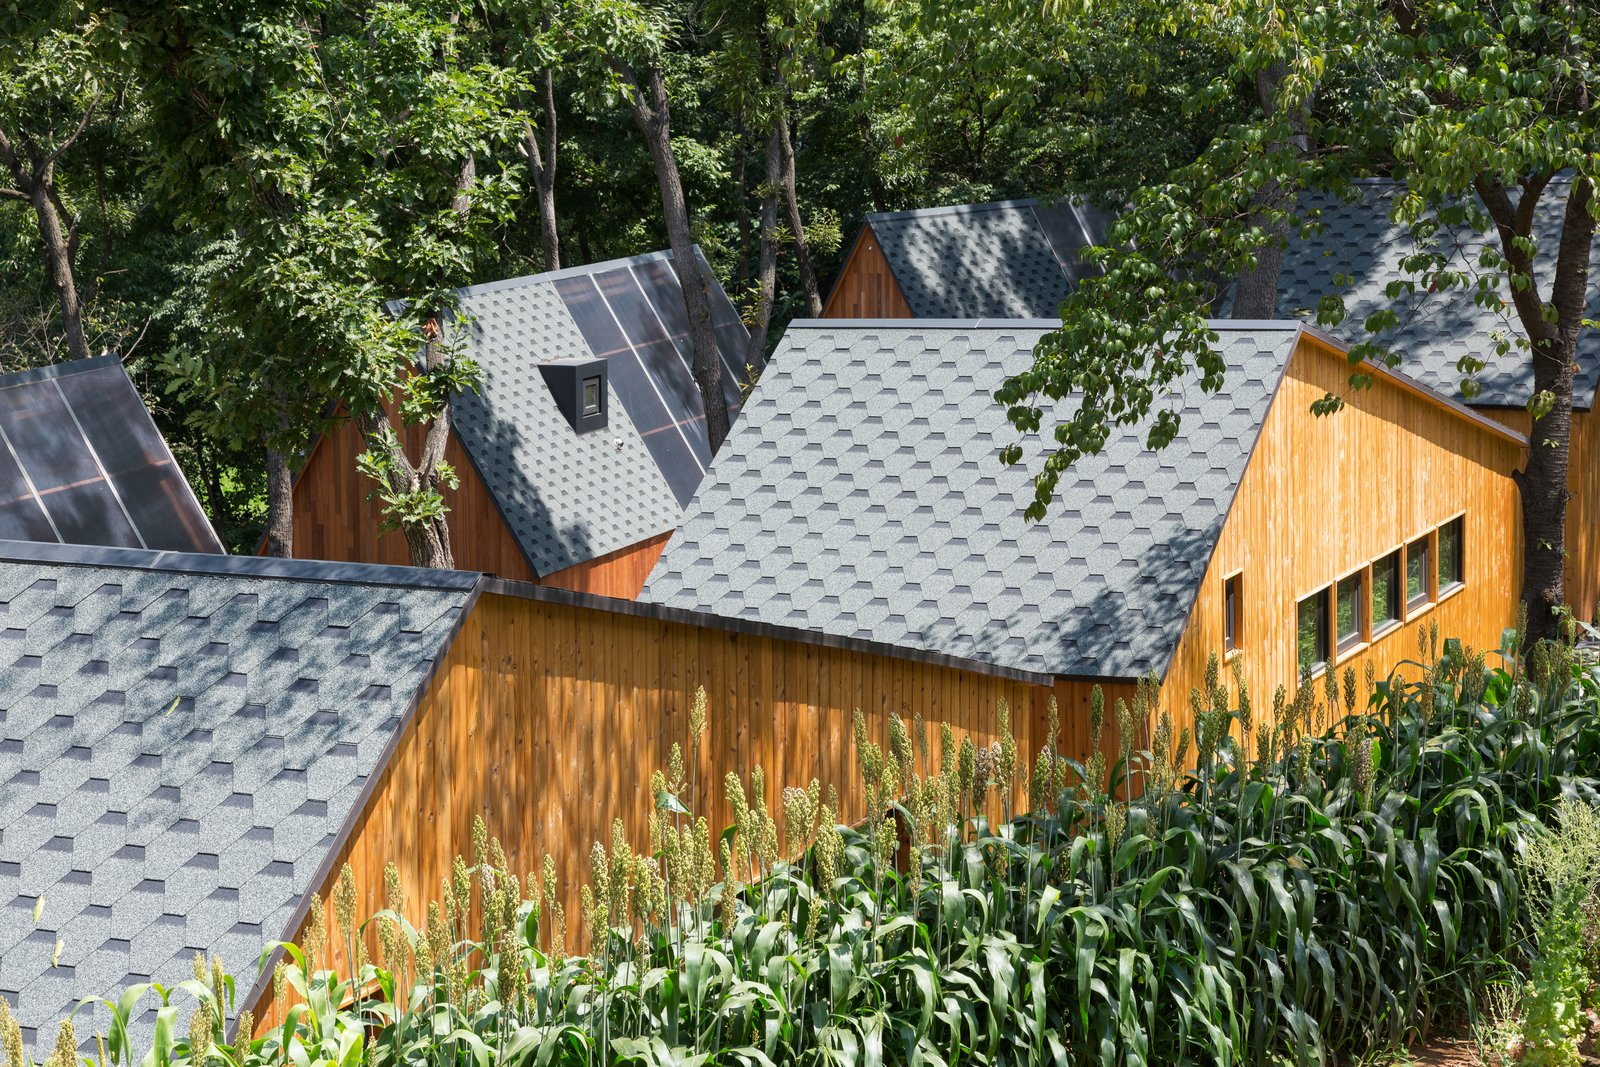 Exterior, Cabin Building Type, Gable RoofLine, House Building Type, Shingles Roof Material, and Wood Siding Material  Photo 1 of 11 in A Camping Village in South Korea Draws Inspiration From an Iconic Fairy Tale